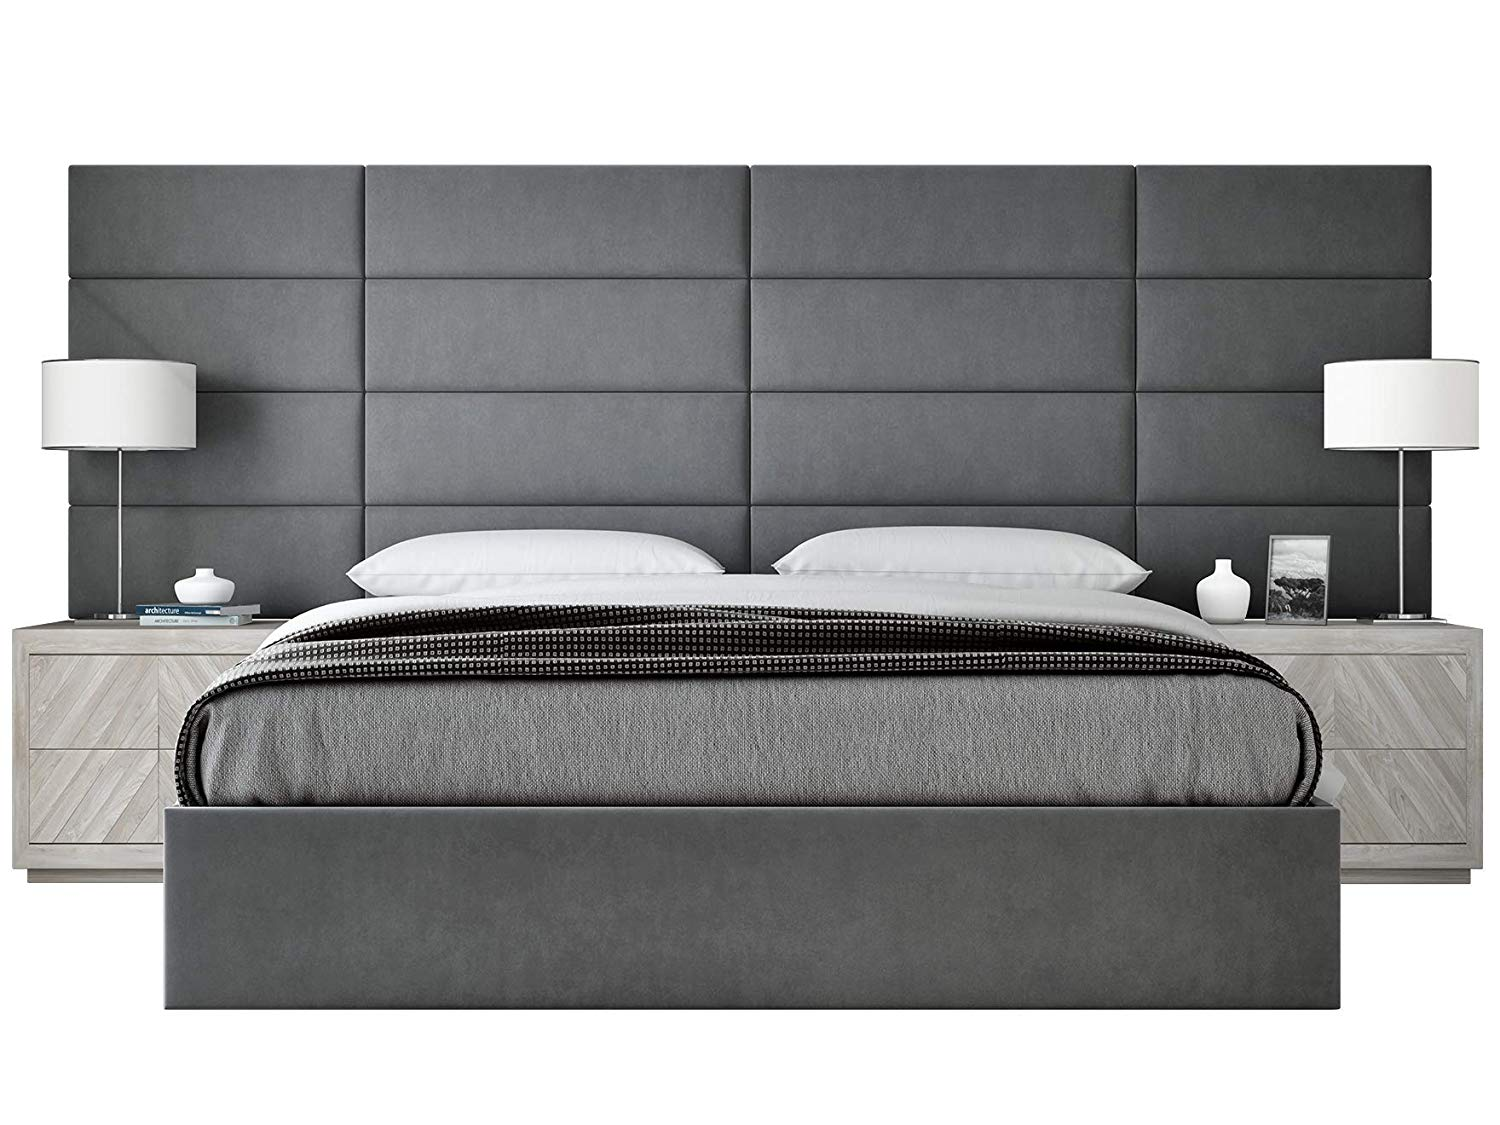 VANT Upholstered Accent WALL Panels King Headboard